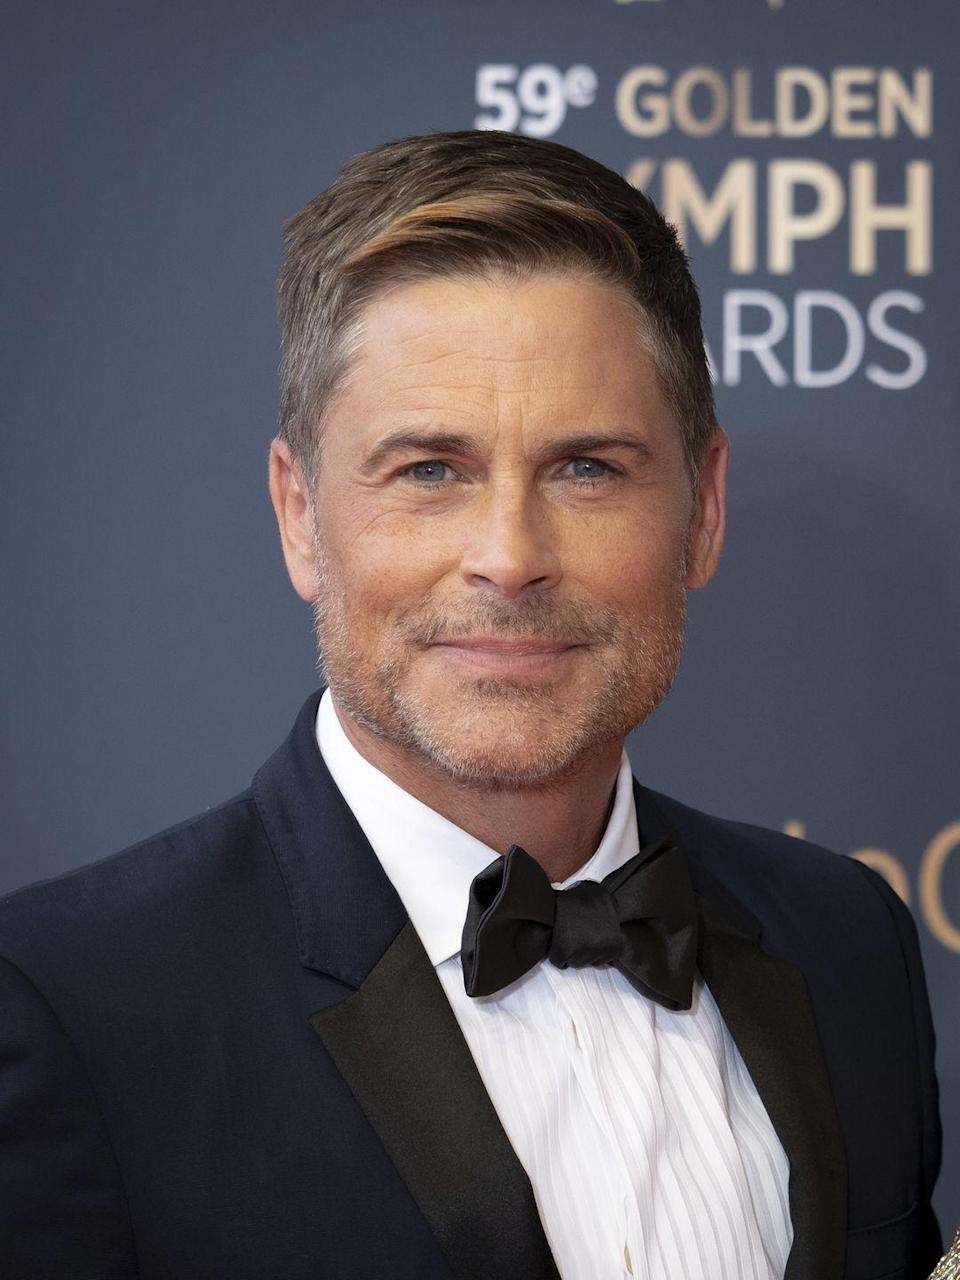 "<p>Rob Lowe's career was revived after joining <em>The West Wing</em> as Sam Seaborn in 1999. But he left the political drama in 2002, reportedly over a pay dispute. The actor made a statement at the time, thanking producers for allowing him to leave the show gracefully. ""We were a part of television history and I will never forget it,"" he said <a href=""https://abcnews.go.com/Entertainment/story?id=101202&page=1"" rel=""nofollow noopener"" target=""_blank"" data-ylk=""slk:in the statement"" class=""link rapid-noclick-resp"">in the statement</a>. </p>"